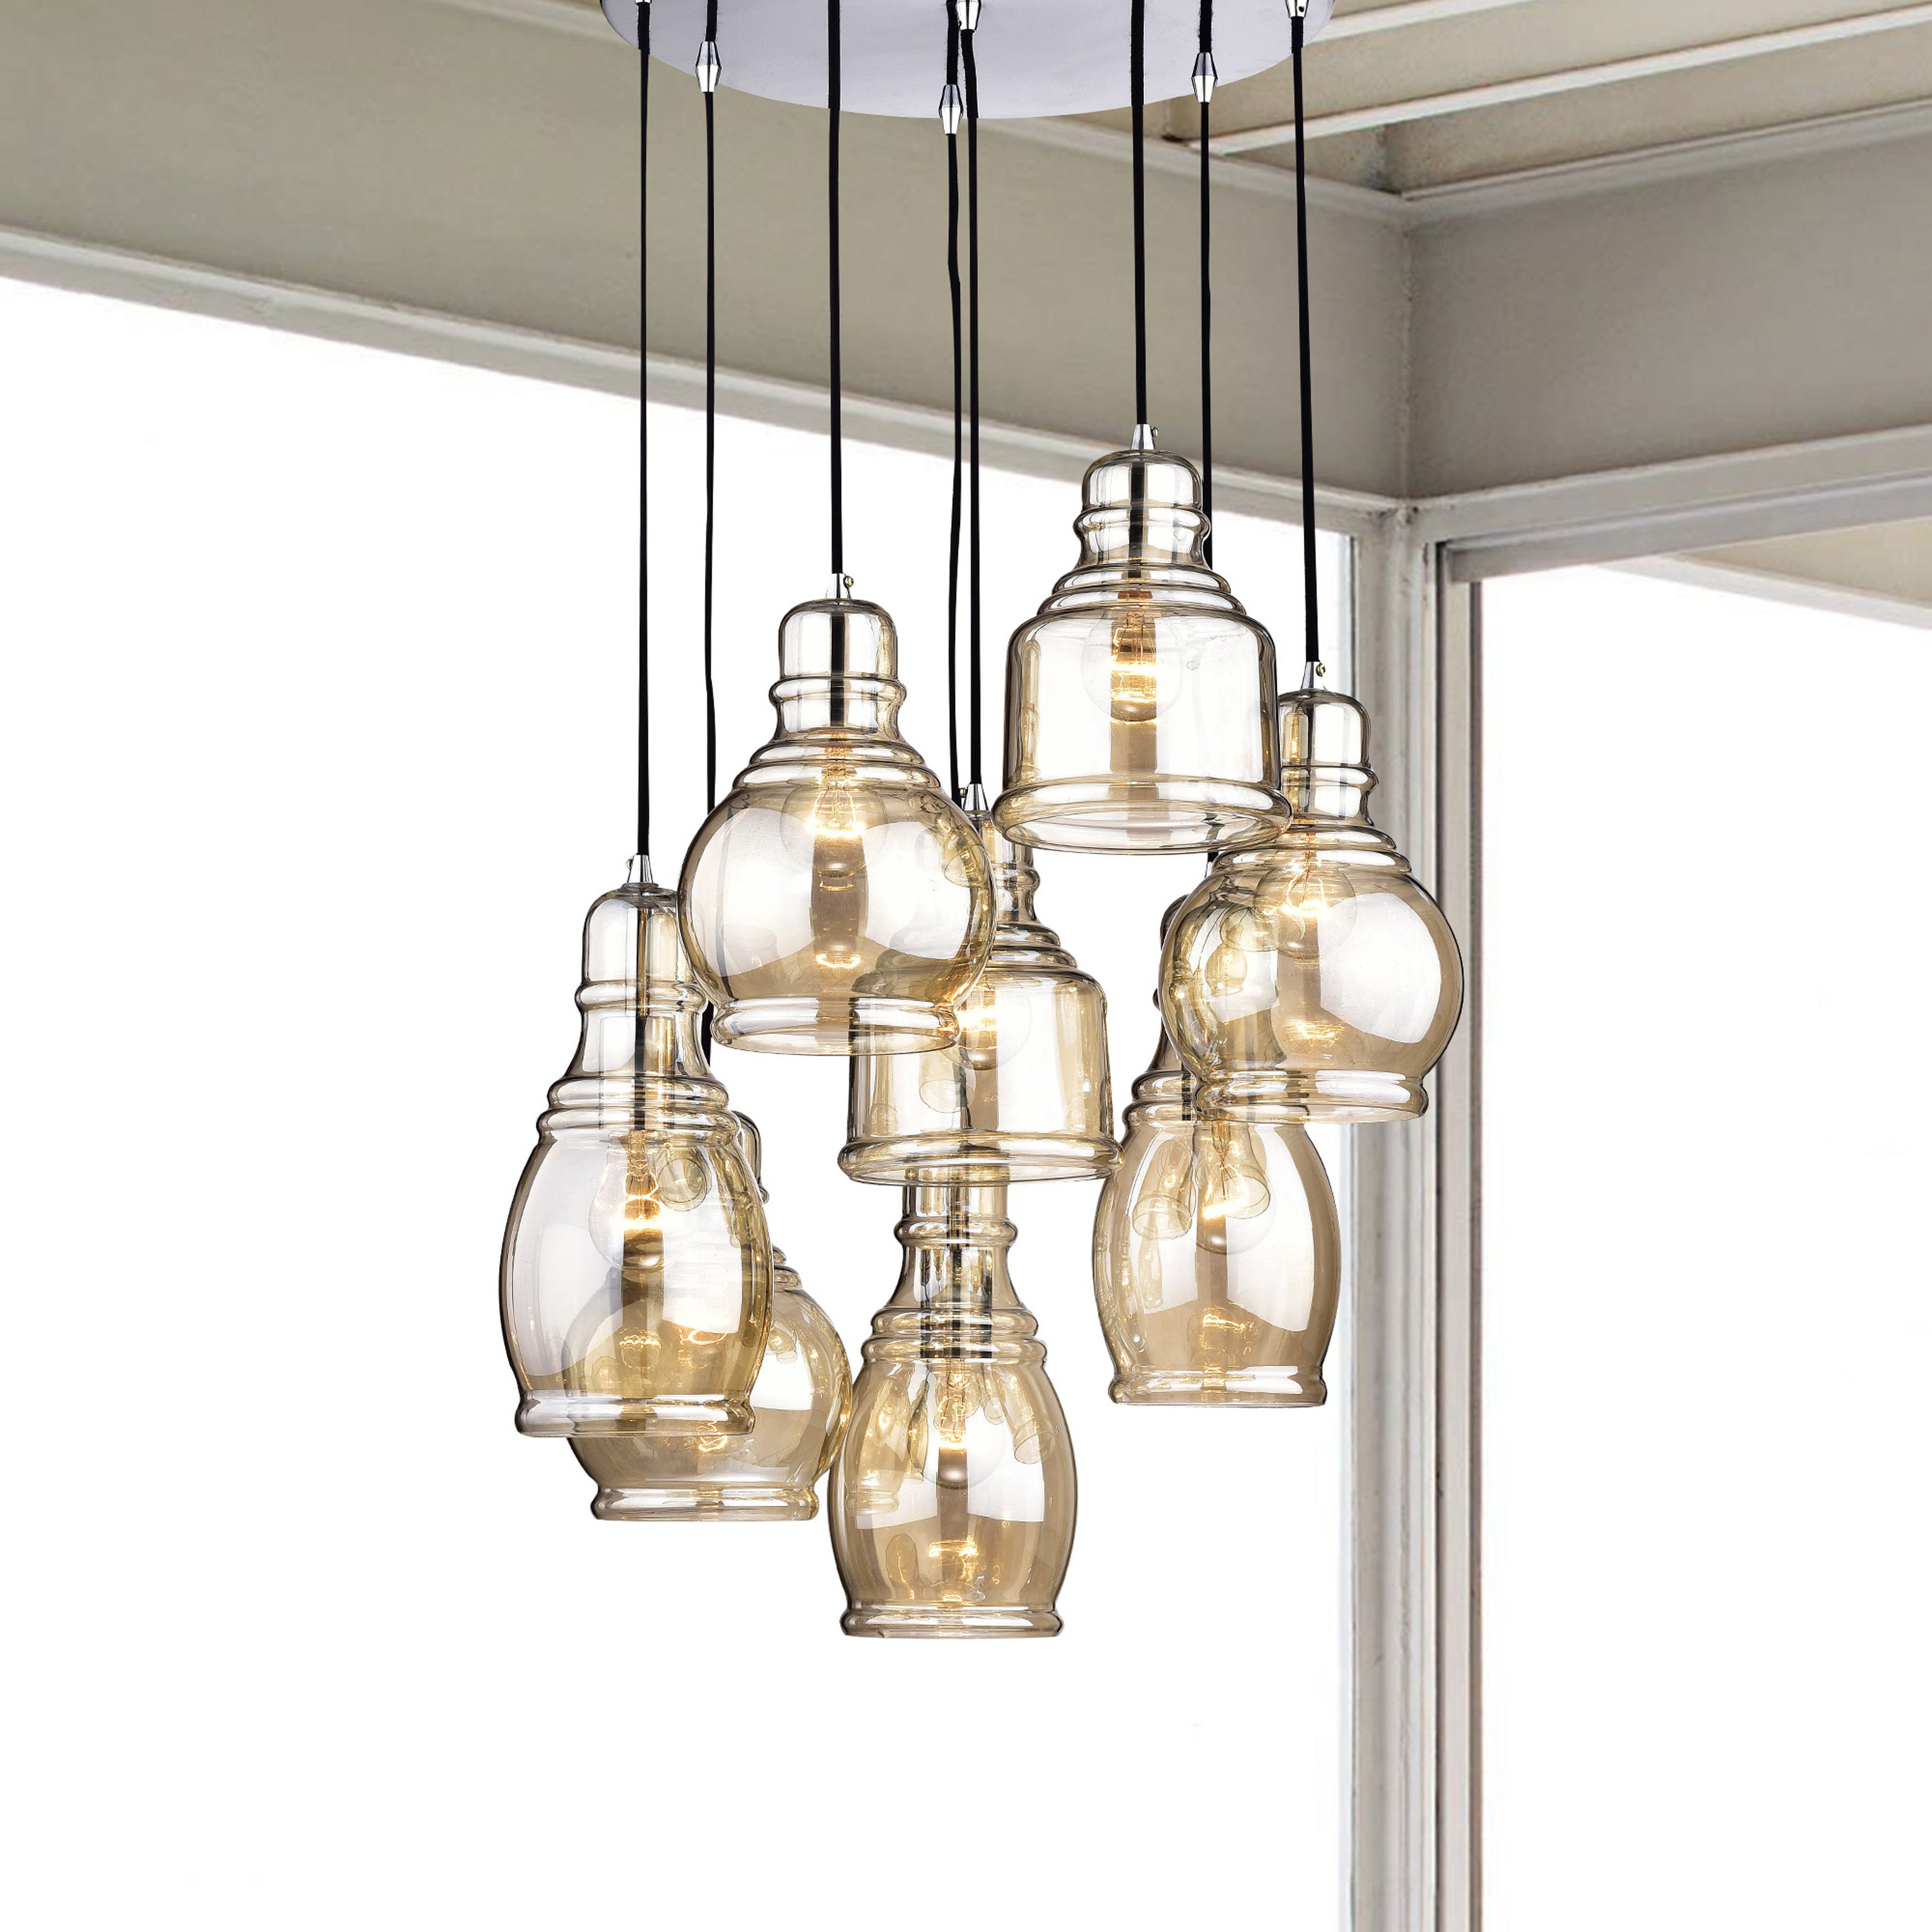 Mariana 8 Light Cognac Gl Cer Pendant Chandelier With Chrome Finish And Round Base